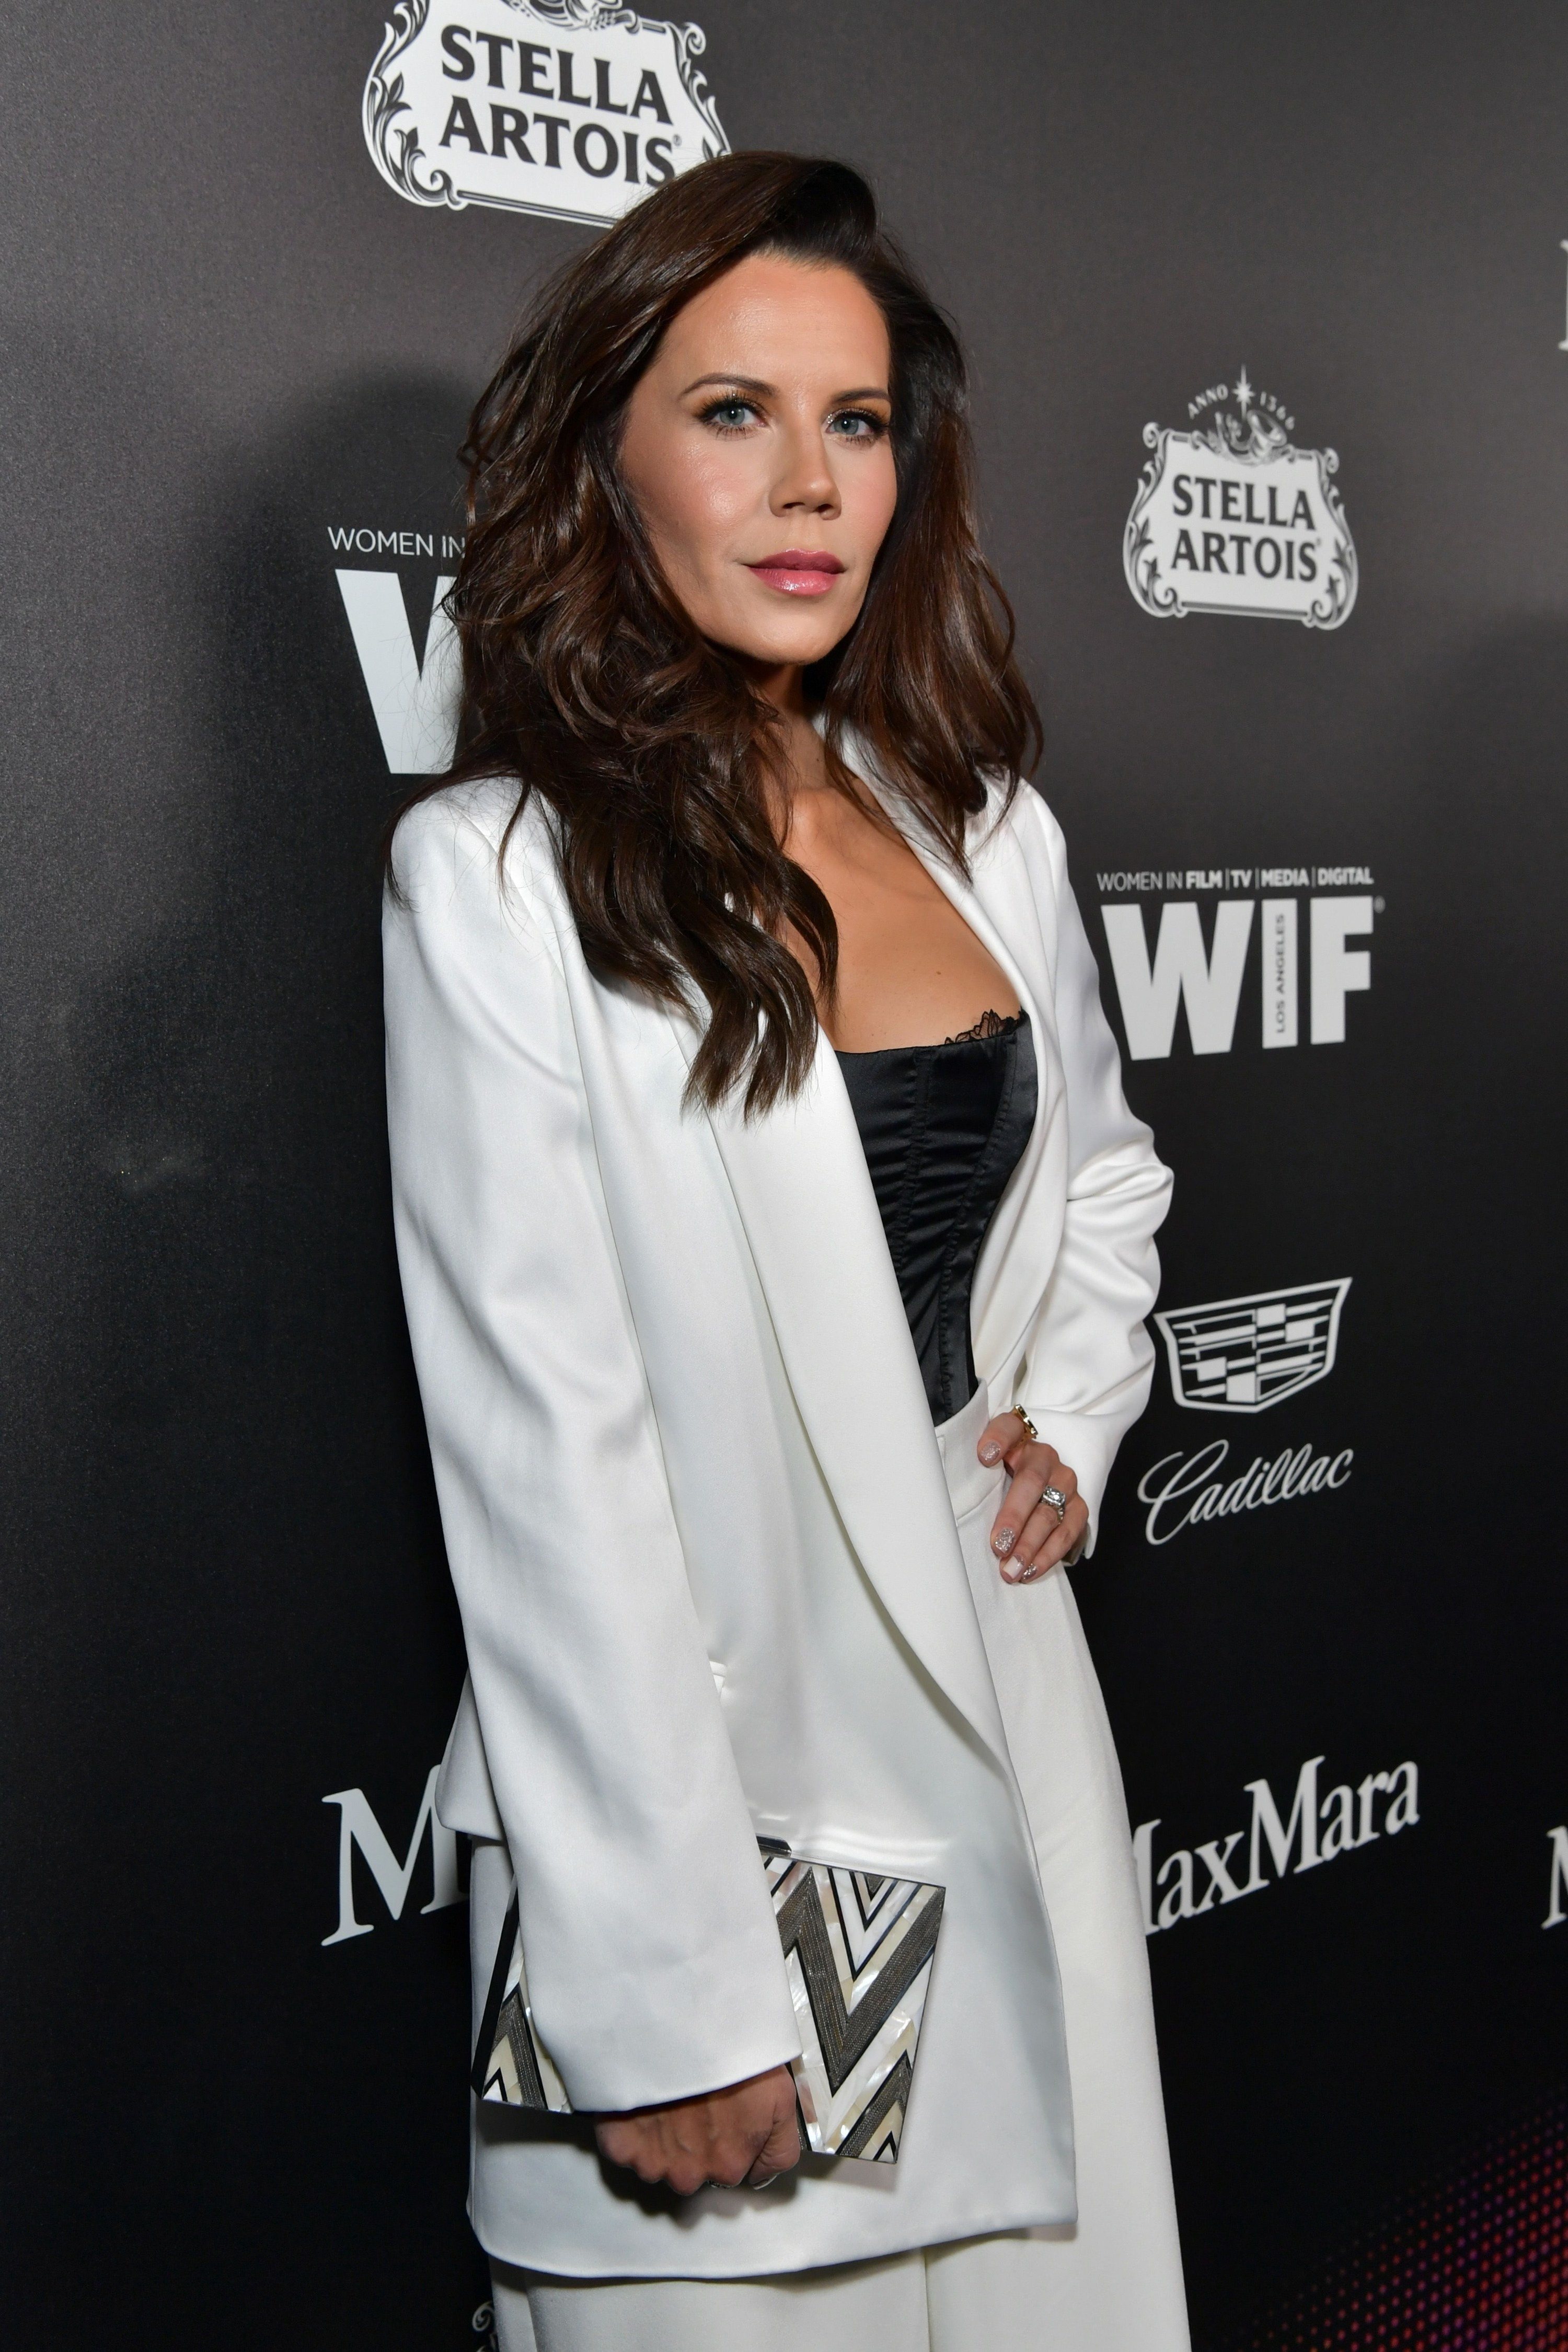 Tati, hand on hip, in a white suit on the red carpet